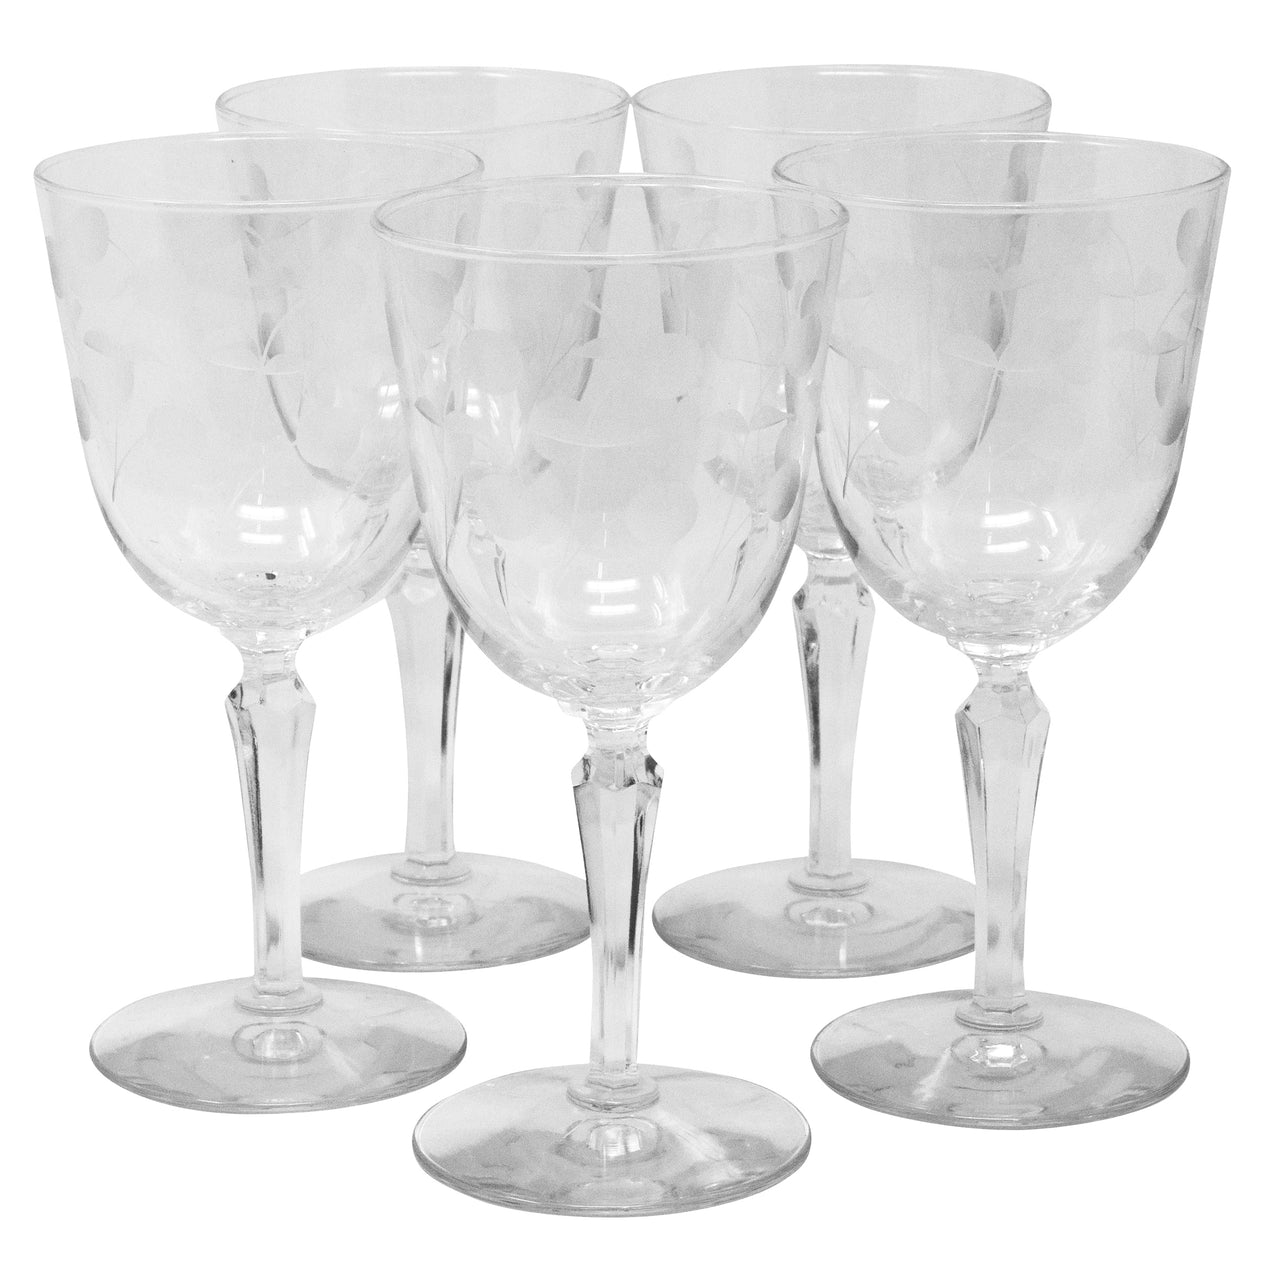 Vintage Etched Cherries and Stems Wine Glasses | The Hour Shop